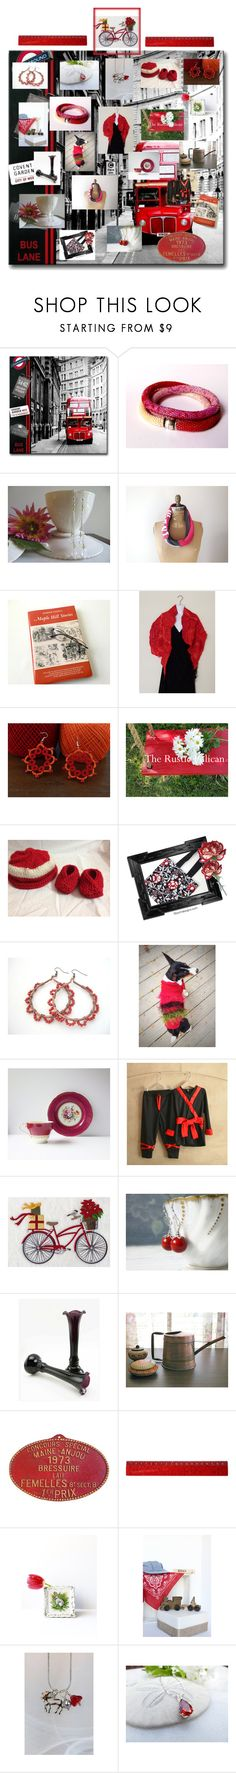 """""""Handmade on Etsy"""" by therusticpelican ❤ liked on Polyvore featuring Aynsley, Conran, modern, contemporary, rustic and vintage"""